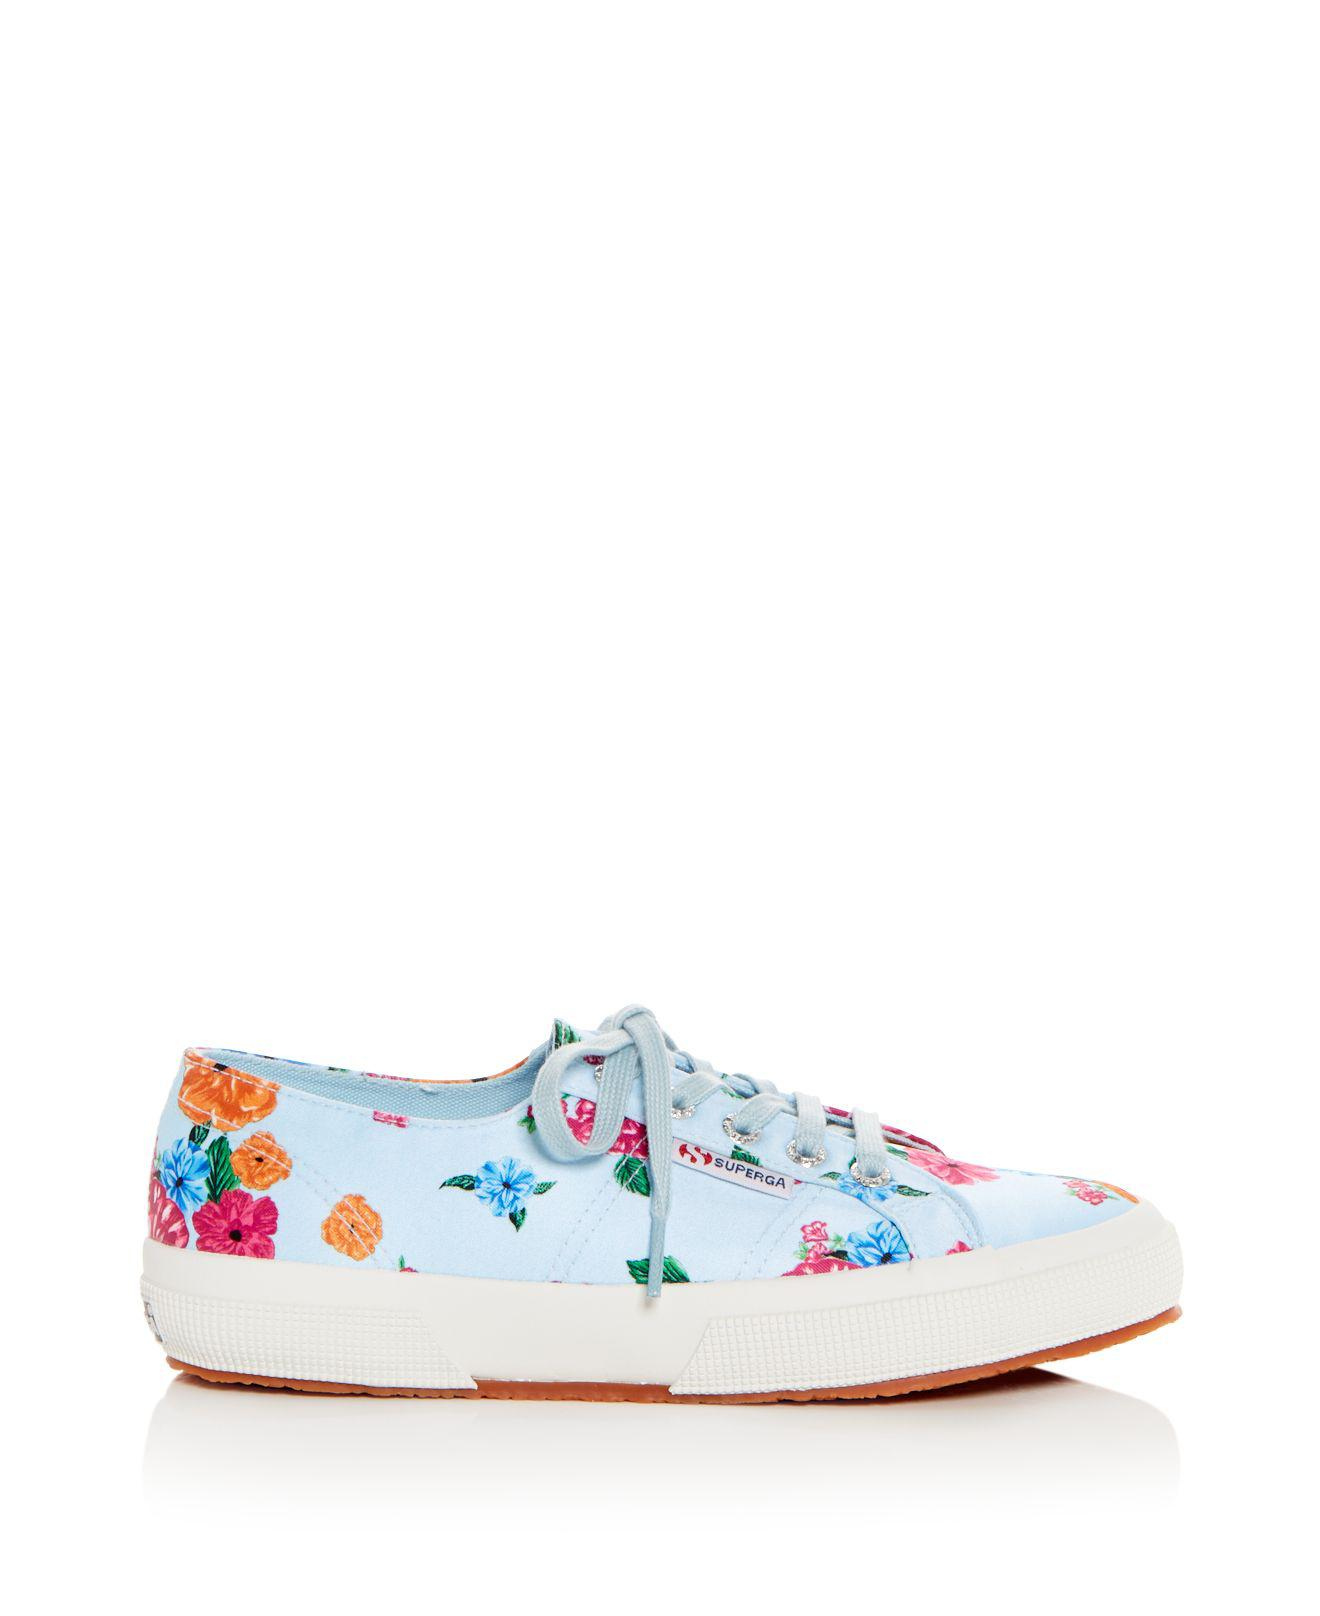 Superga Women's Classic Floral Satin Lace Up Sneakers